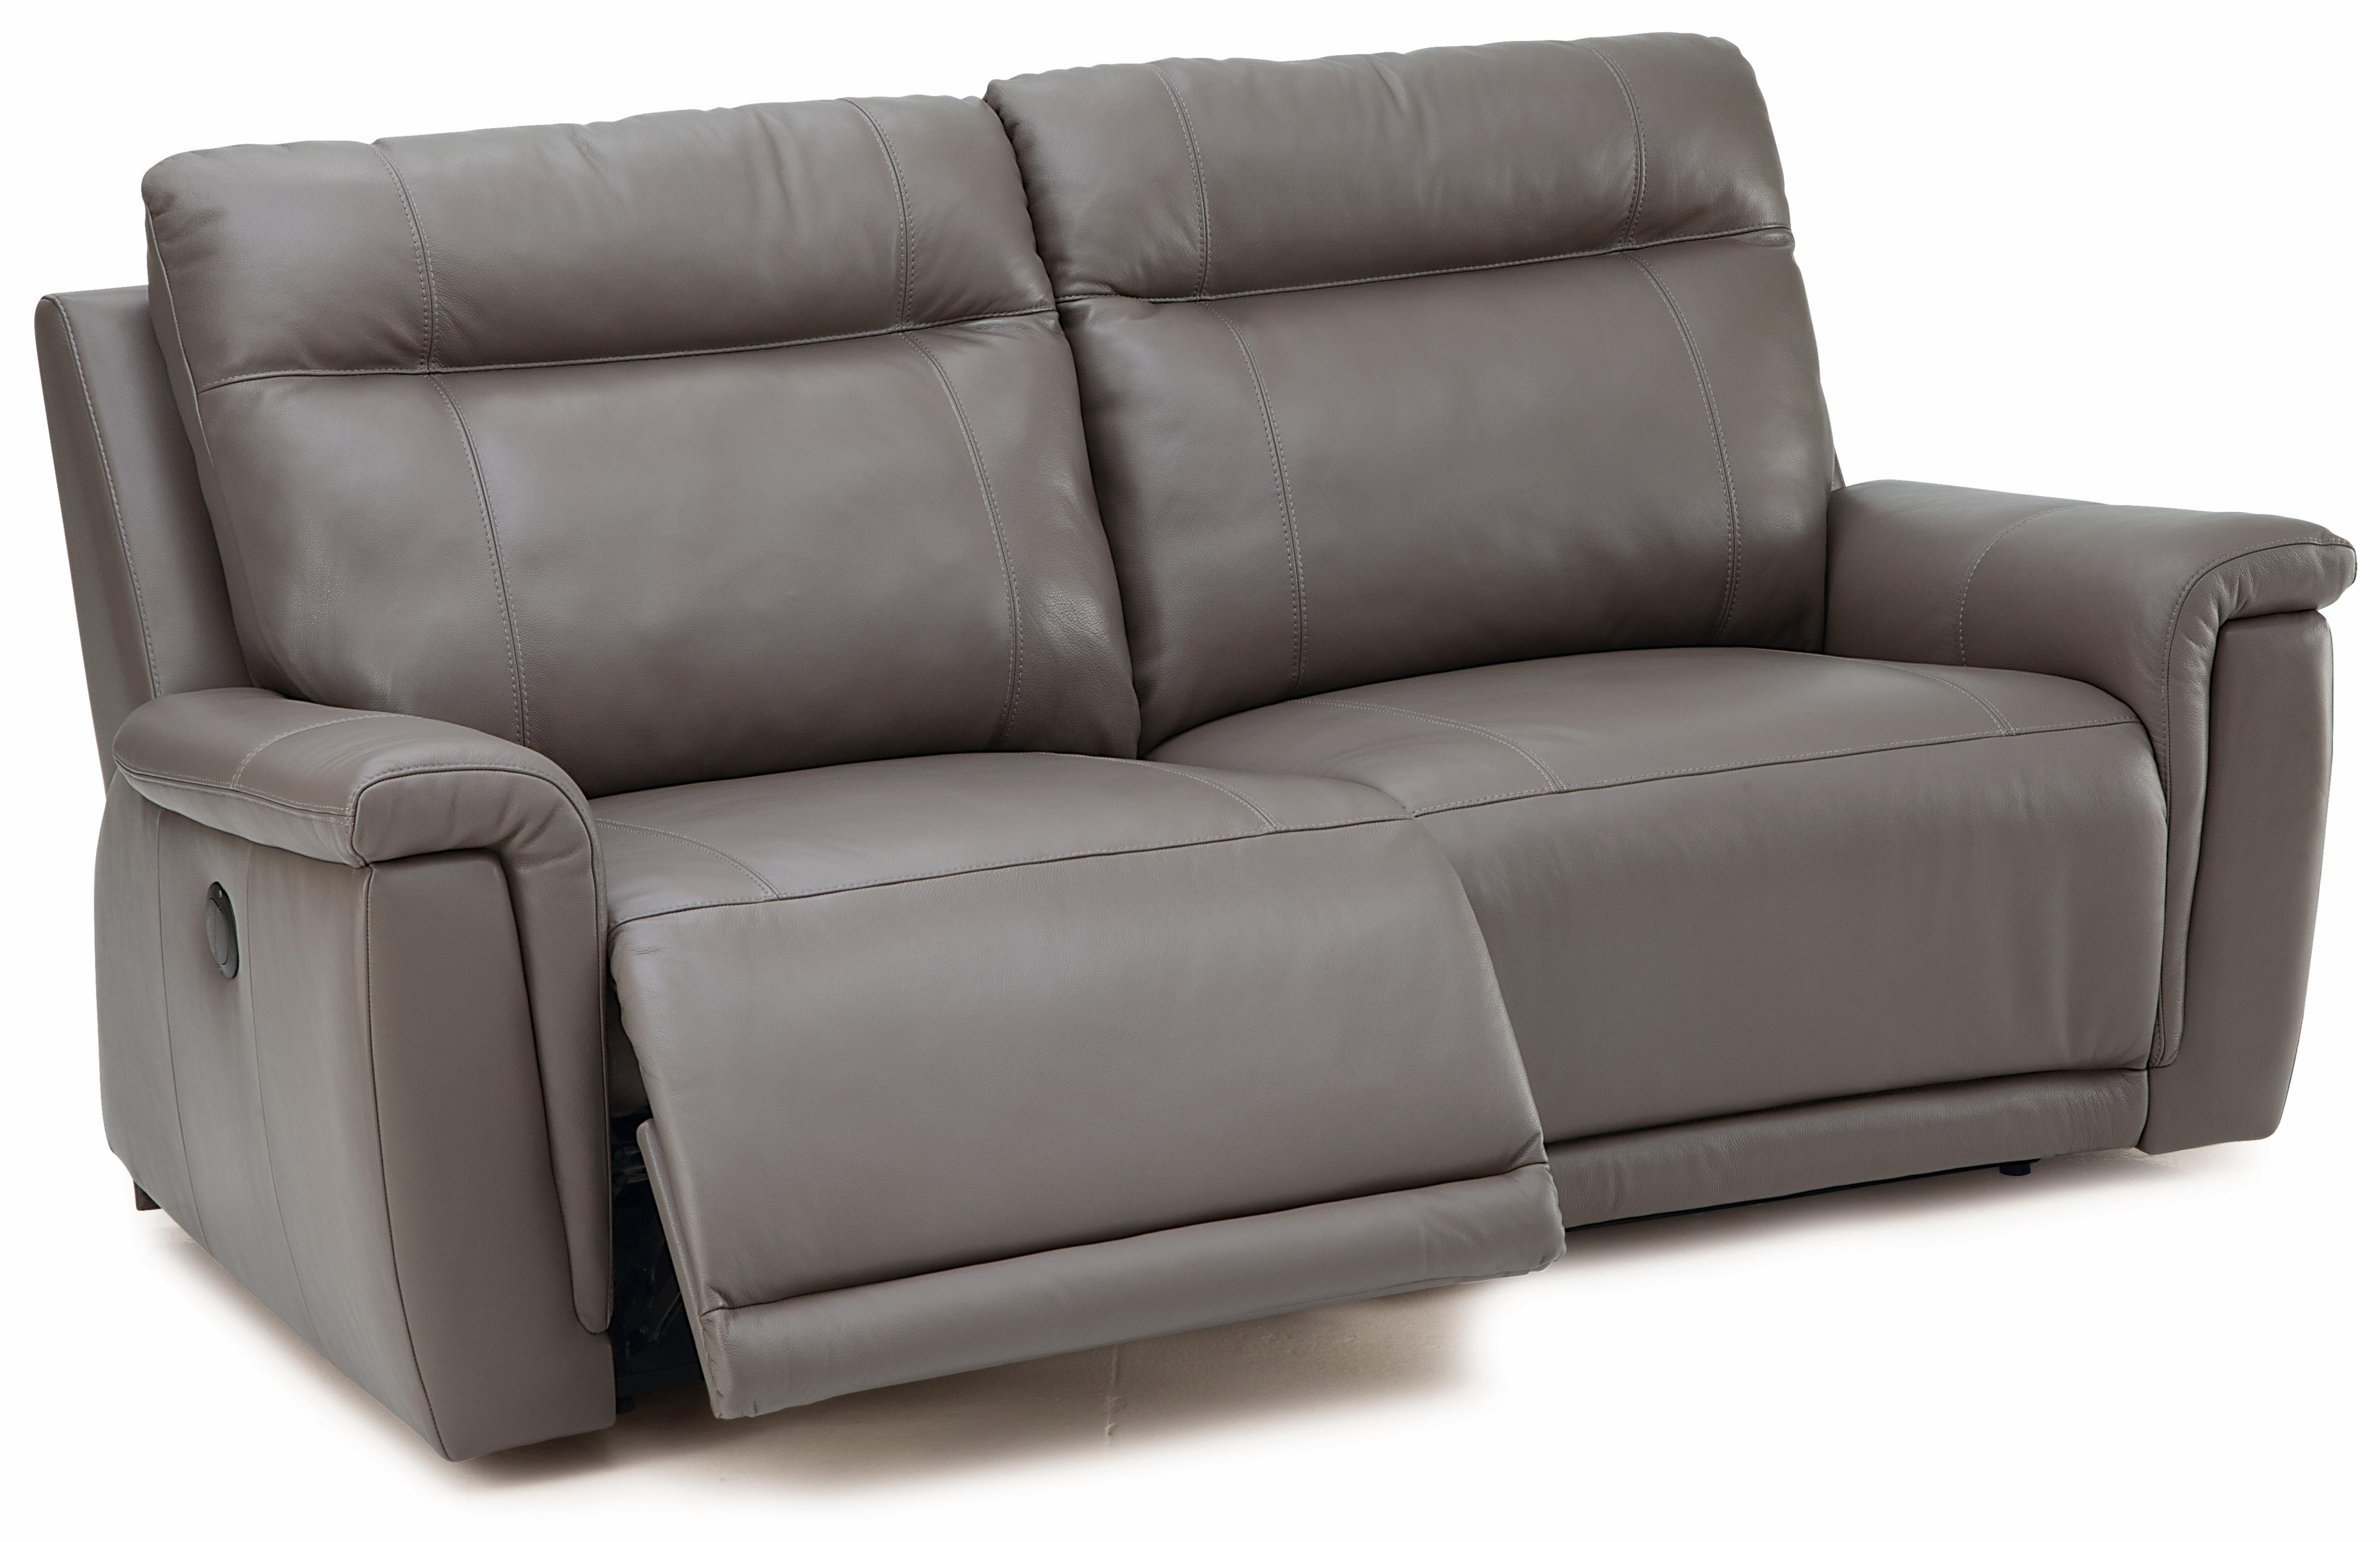 Palliser Westpoint 41121 5p Leather Power Sofa W Footrest